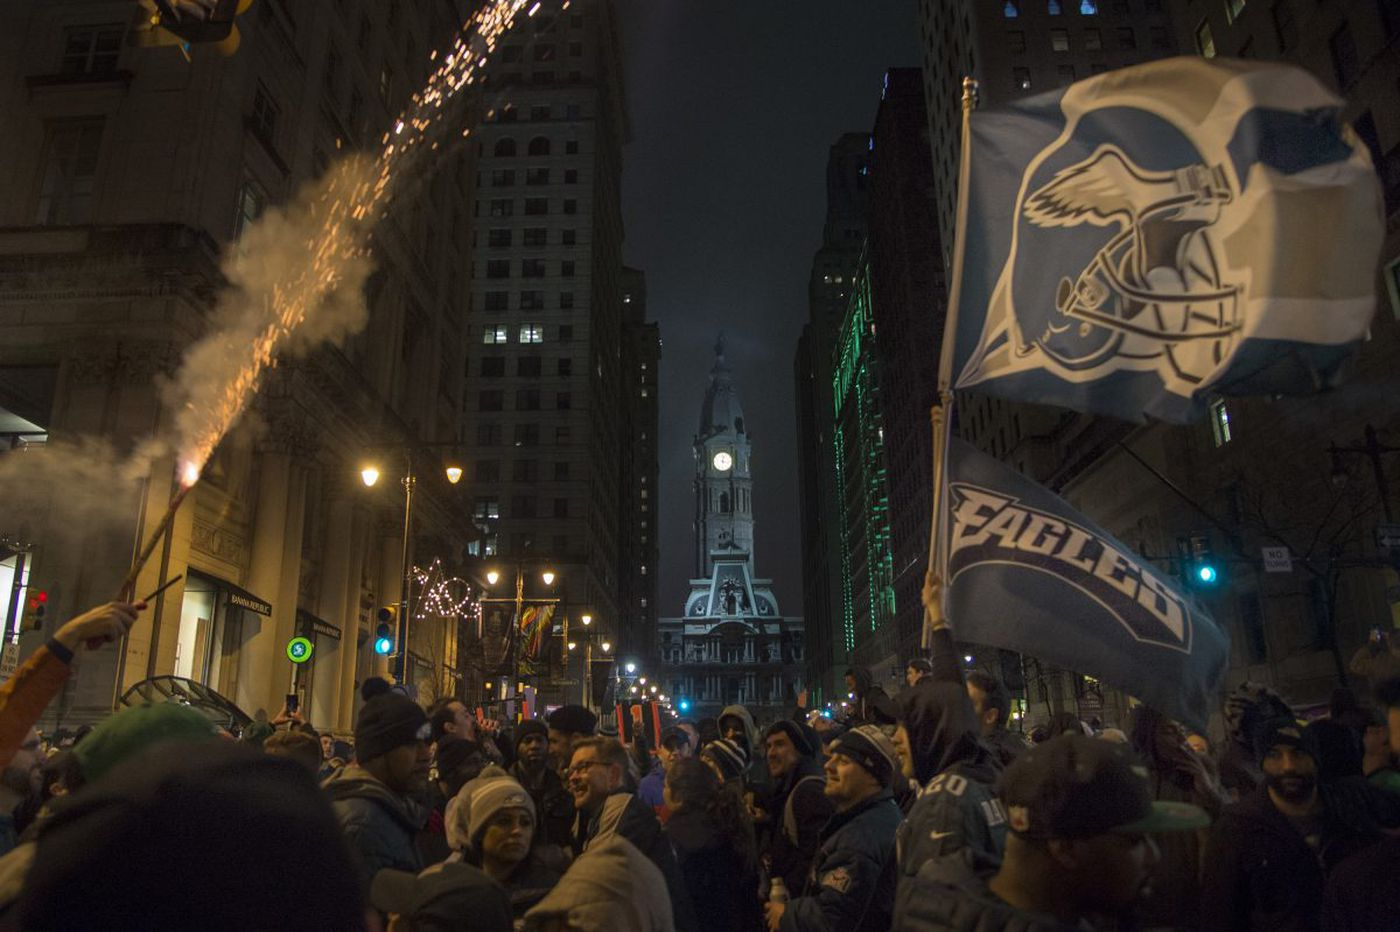 Super Bowl celebration: Eagles fans take to streets in Philadelphia after win over Patriots